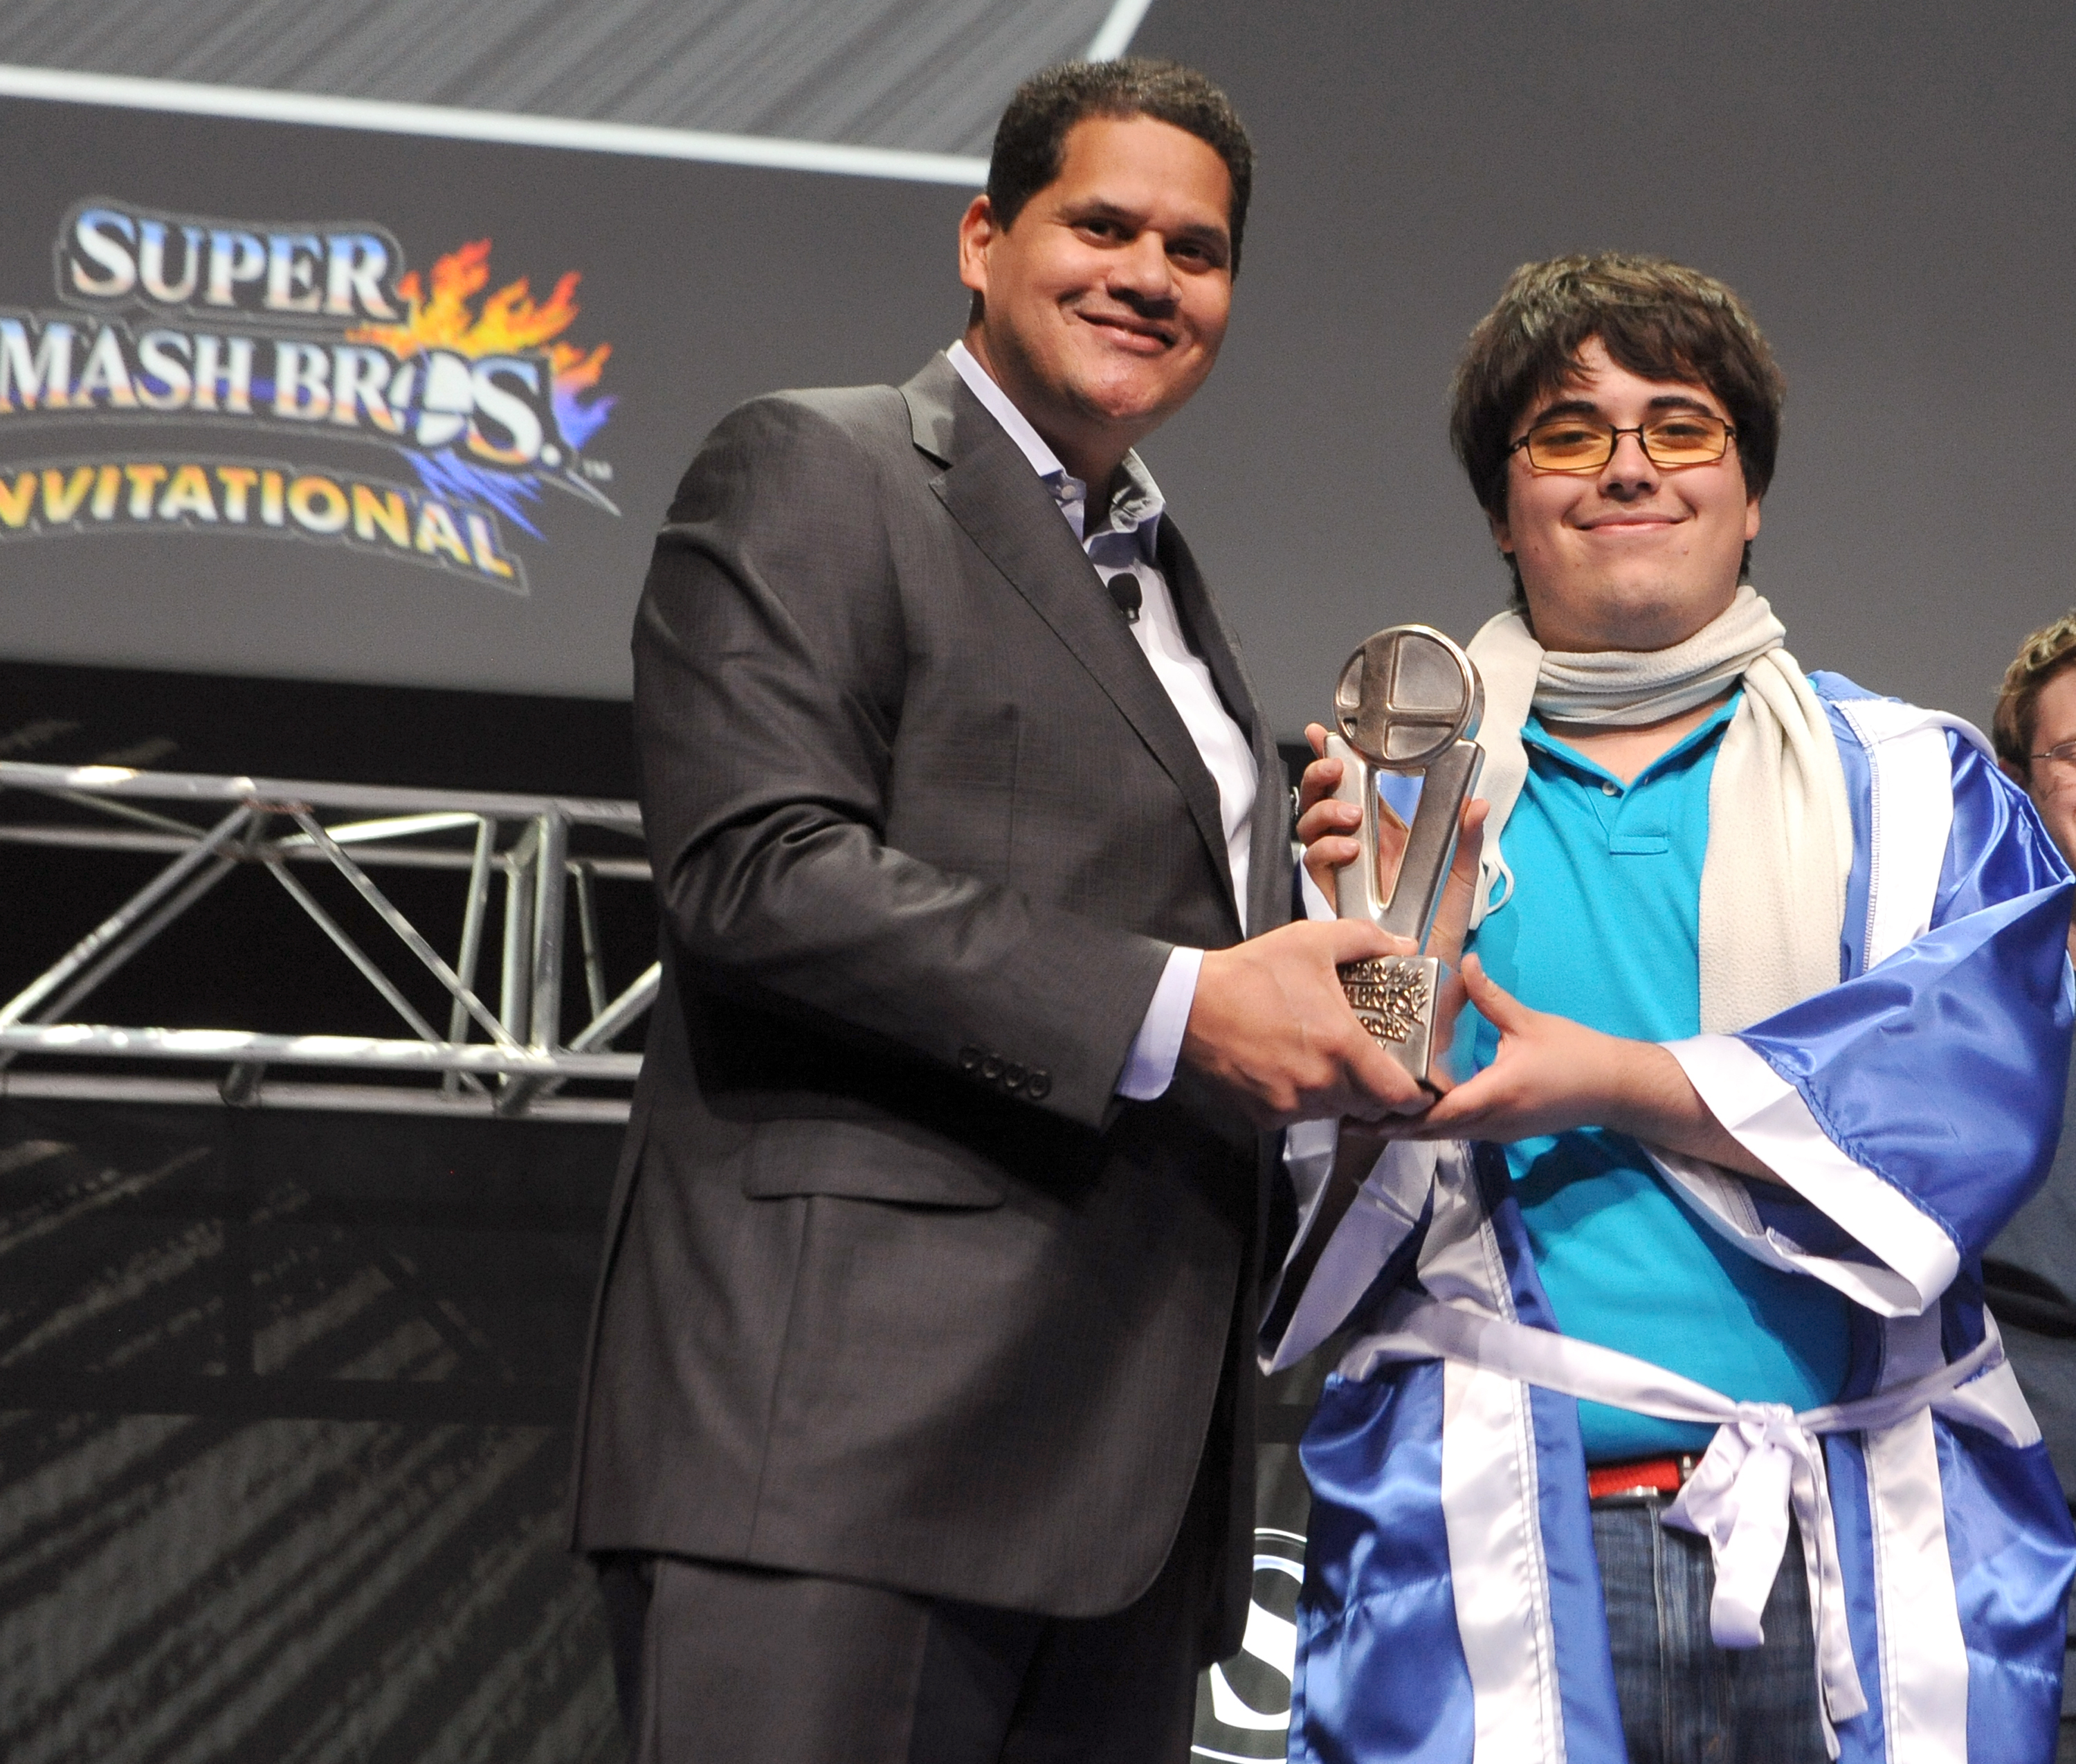 """In this photo provided by Nintendo of America, Super Smash Bros. Invitational winner Gonzalo """"ZeRo"""" Barrios of Chillan, Chile receives the grand-prize trophy from Nintendo of America President and COO Reggie Fils-Aime. Thousands of fans in the audience and countless more watching online celebrated the Super Smash Bros. franchise in anticipation of the game's launch this year on both Nintendo 3DS and Wii U. (Photo: Business Wire)"""